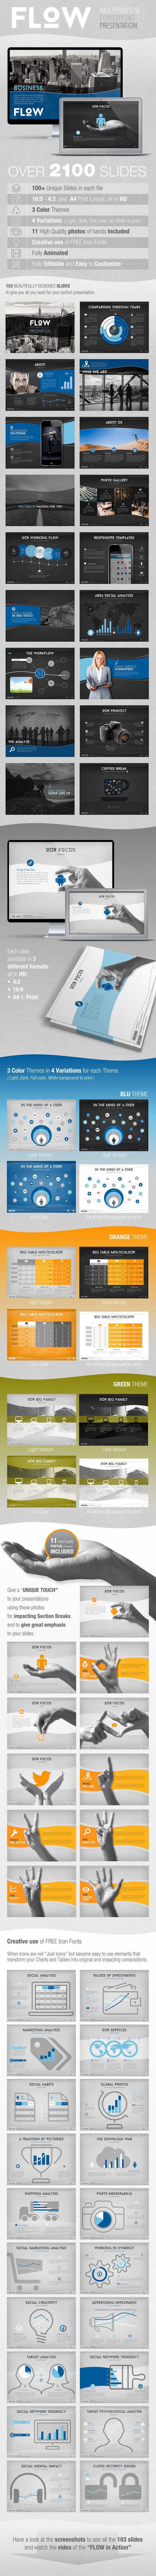 GraphicRiver Flow multipurpose Powerpoint template 10669010